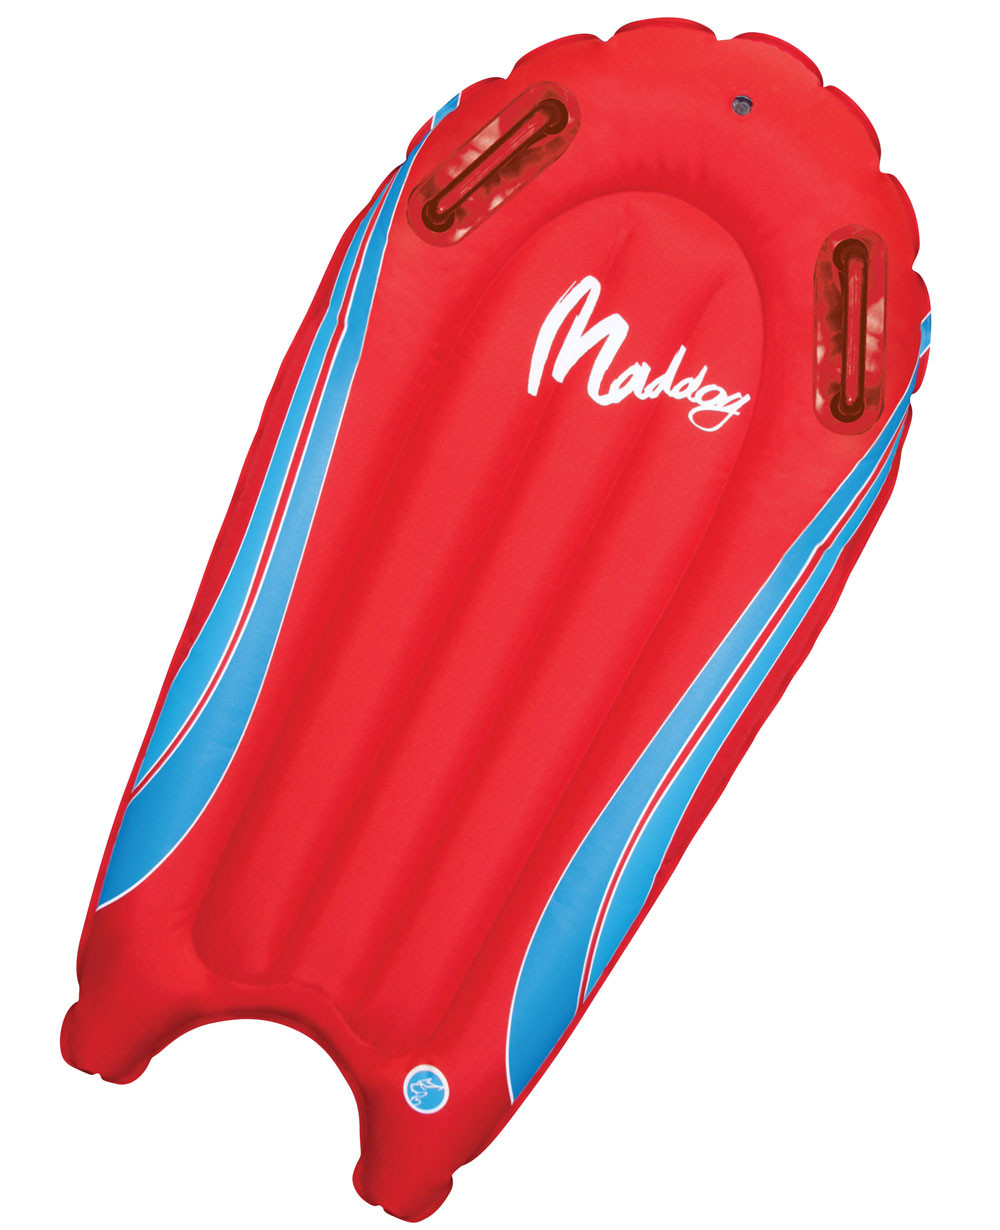 mad-dog-surfmat-red